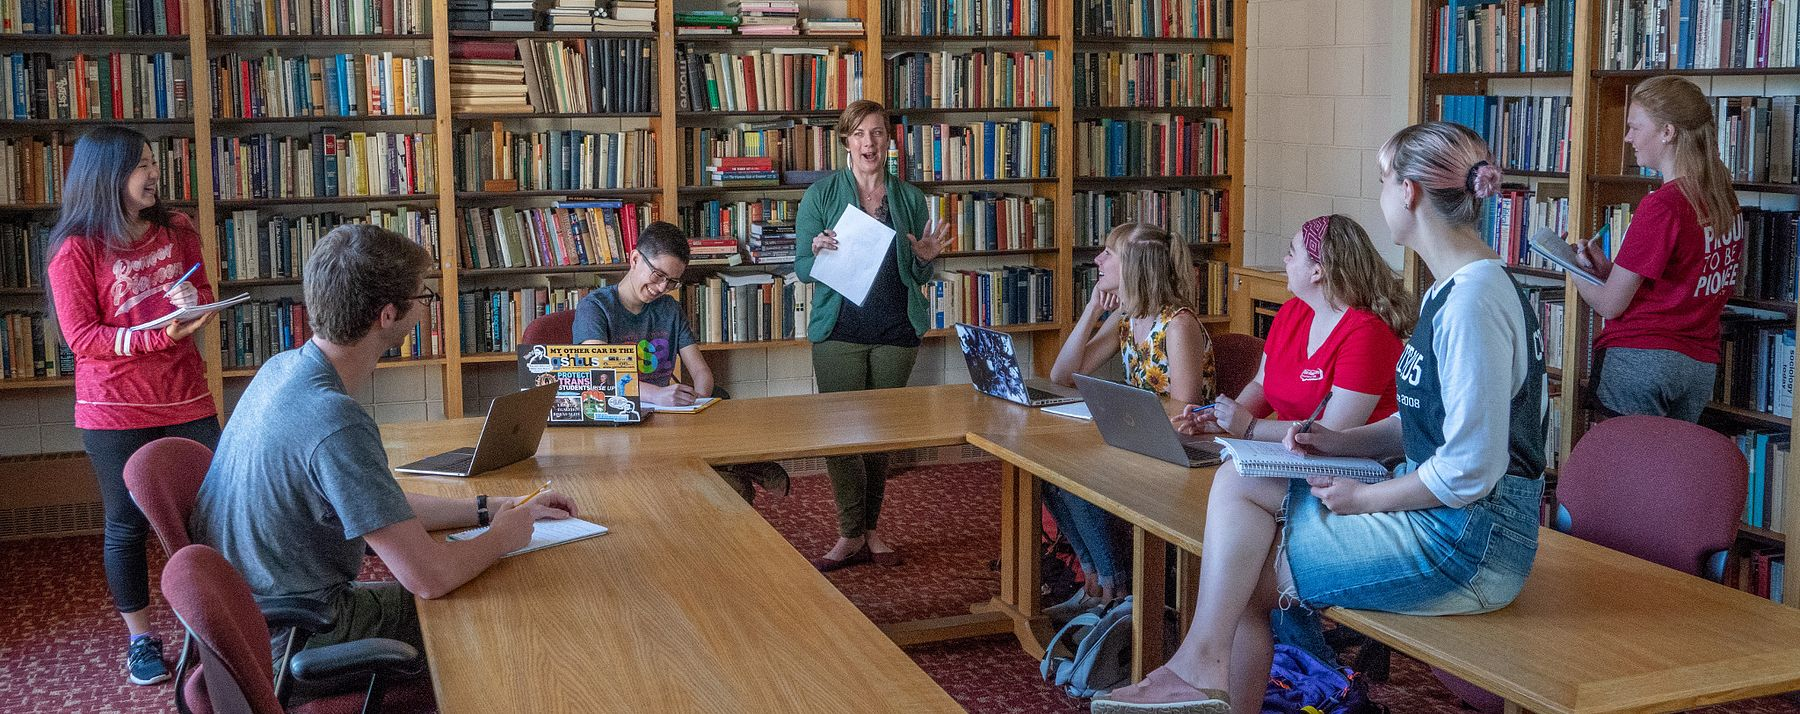 excited teacher talking to class in library